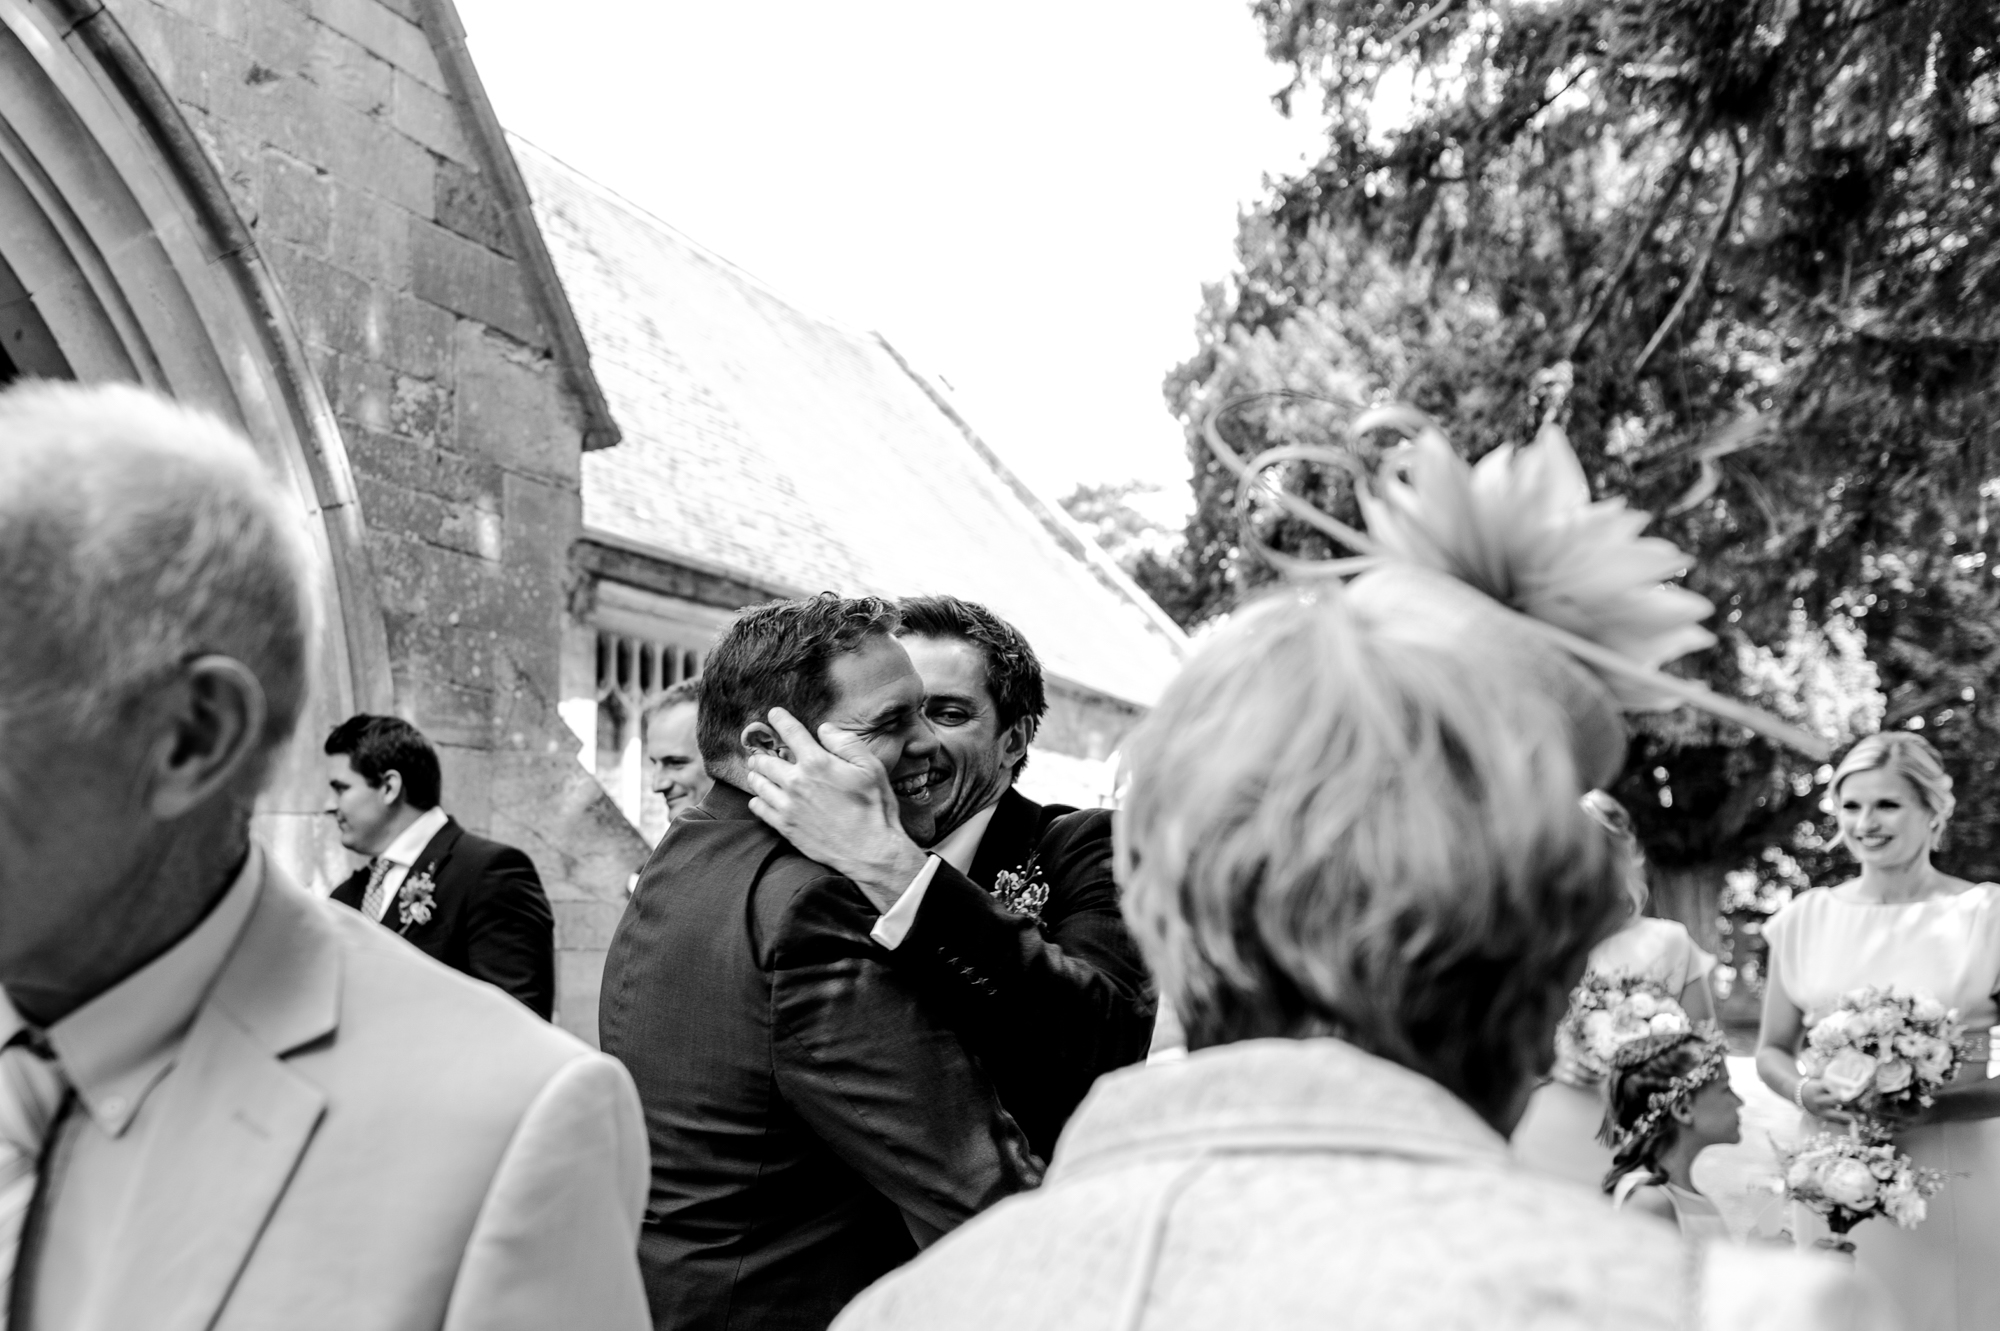 Cotswold Wedding Photography 11.09.1819.jpg